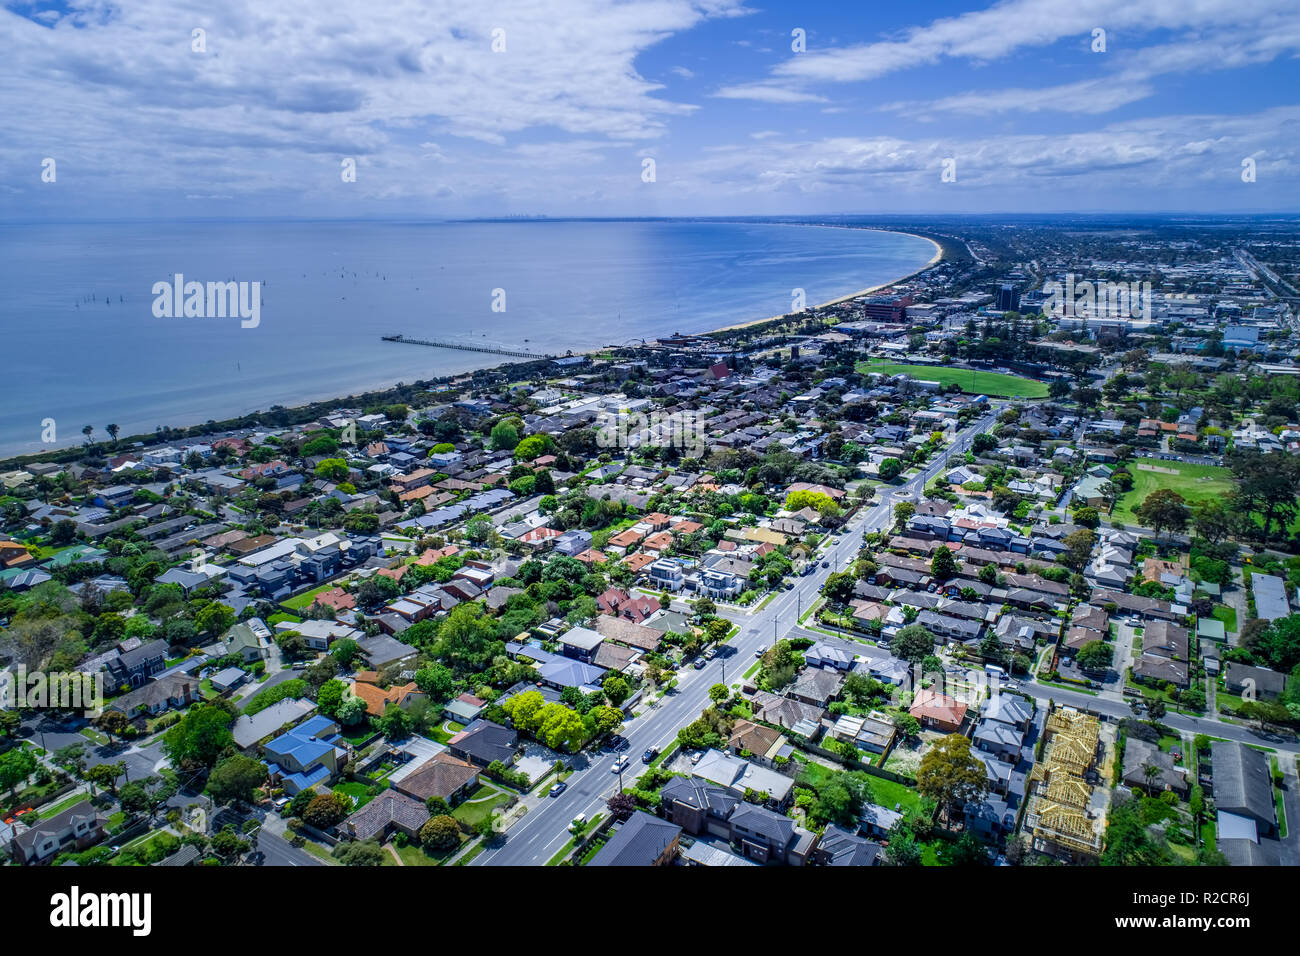 Aerial view of Frankston suburb in Melbourne, Australia - Stock Image